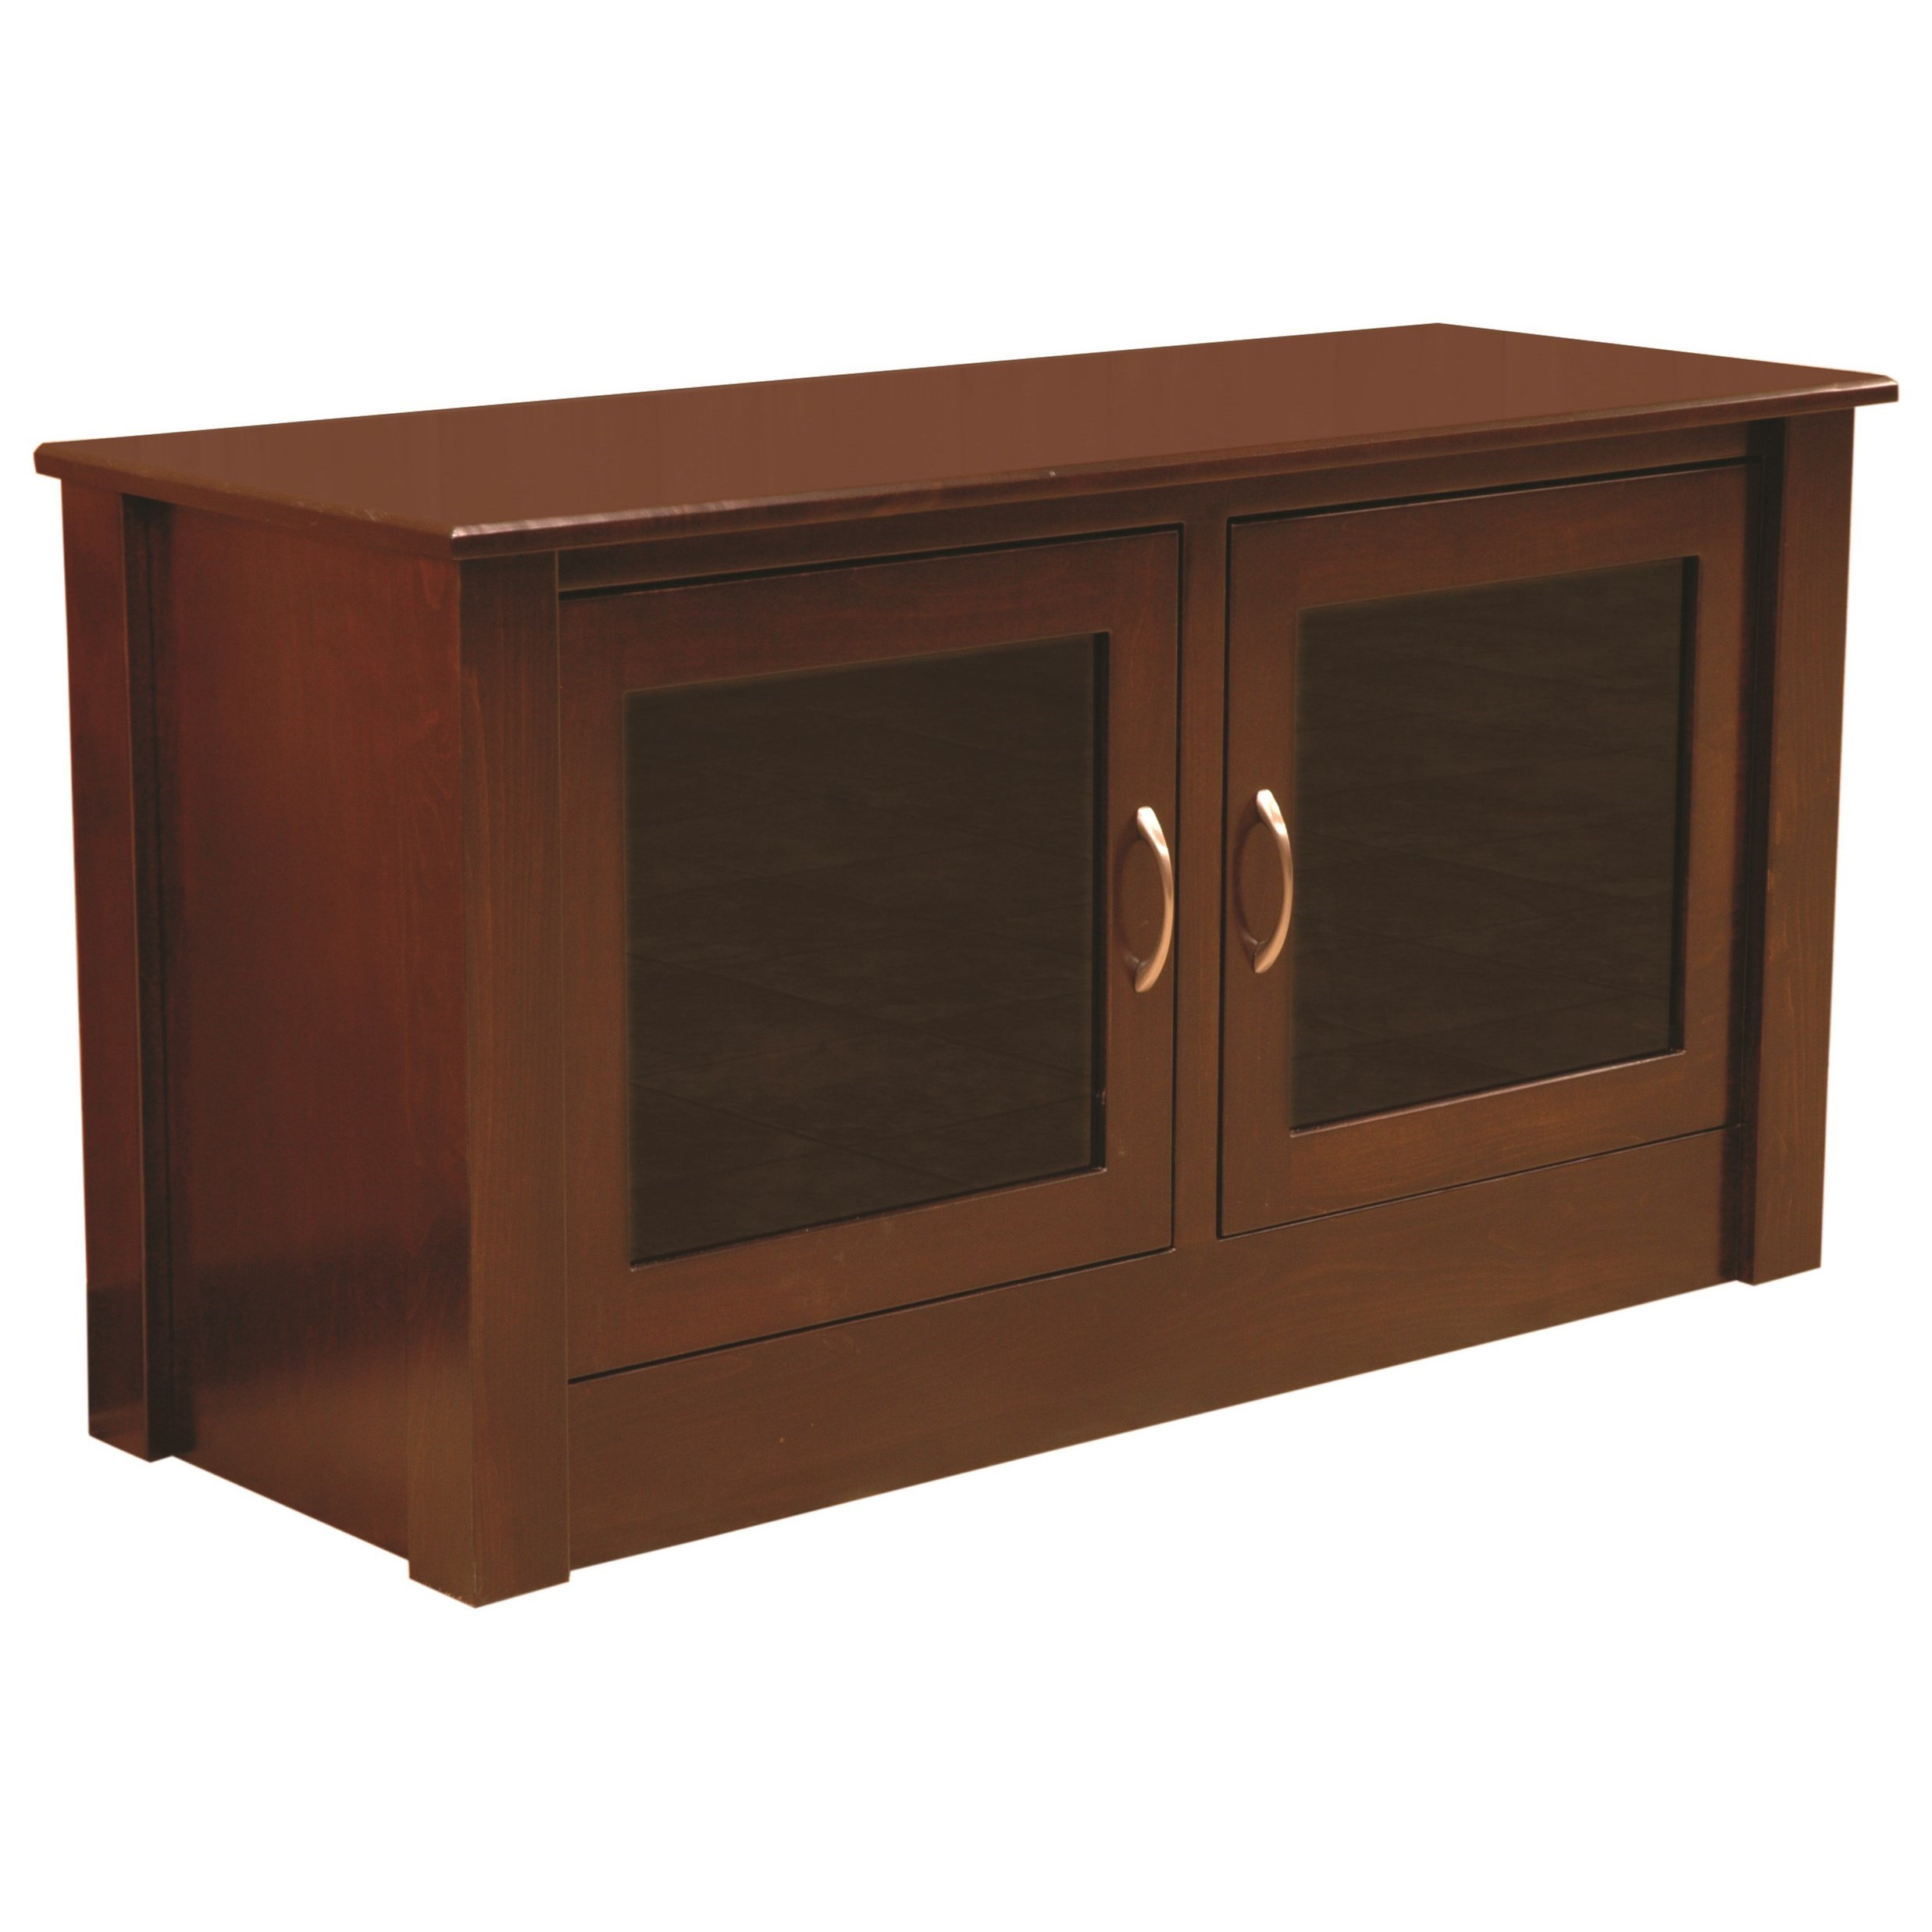 """Entertainment Horizon 48"""" TV Stand by INTEG Wood Products at Saugerties Furniture Mart"""